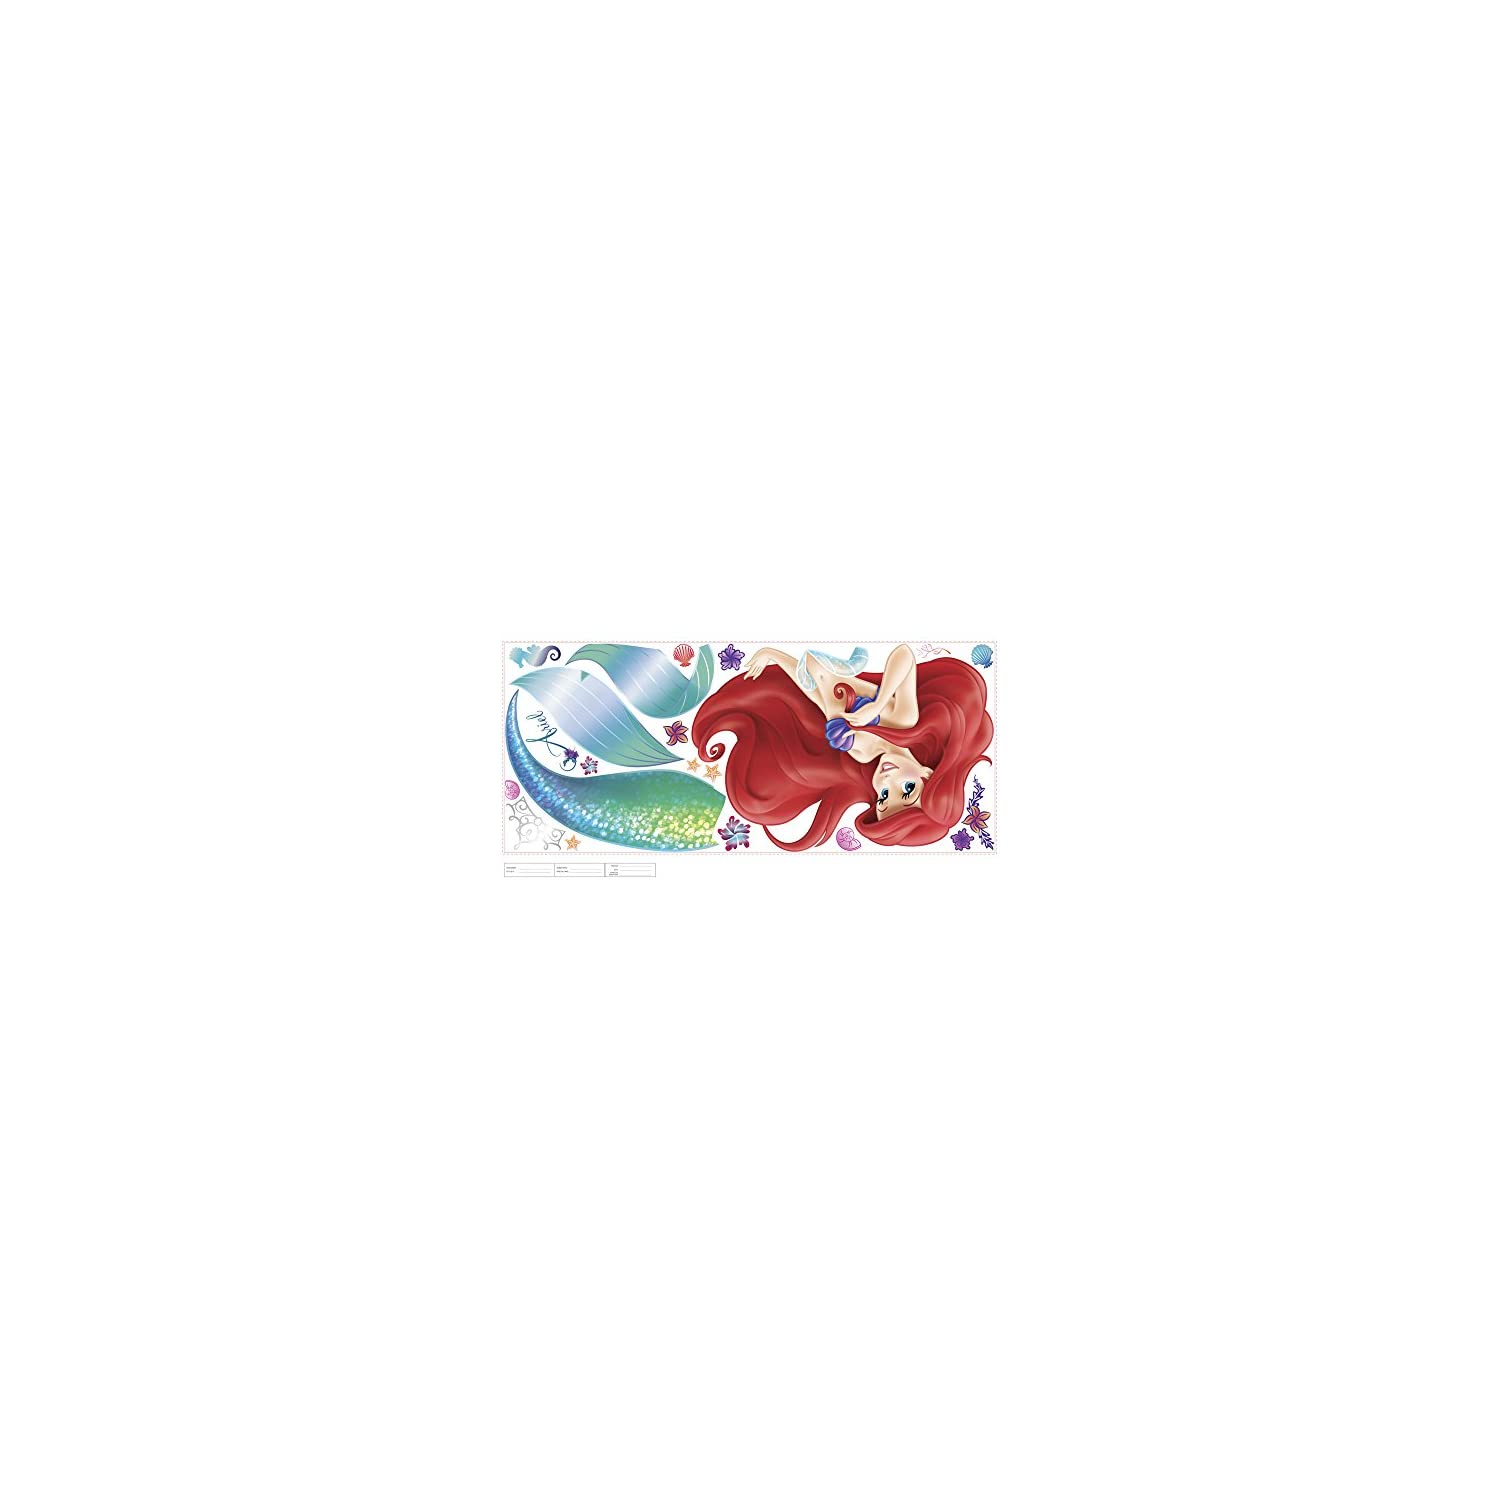 RoomMates The Little Mermaid Peel And Stick Giant Wall Decals – RMK2360GM